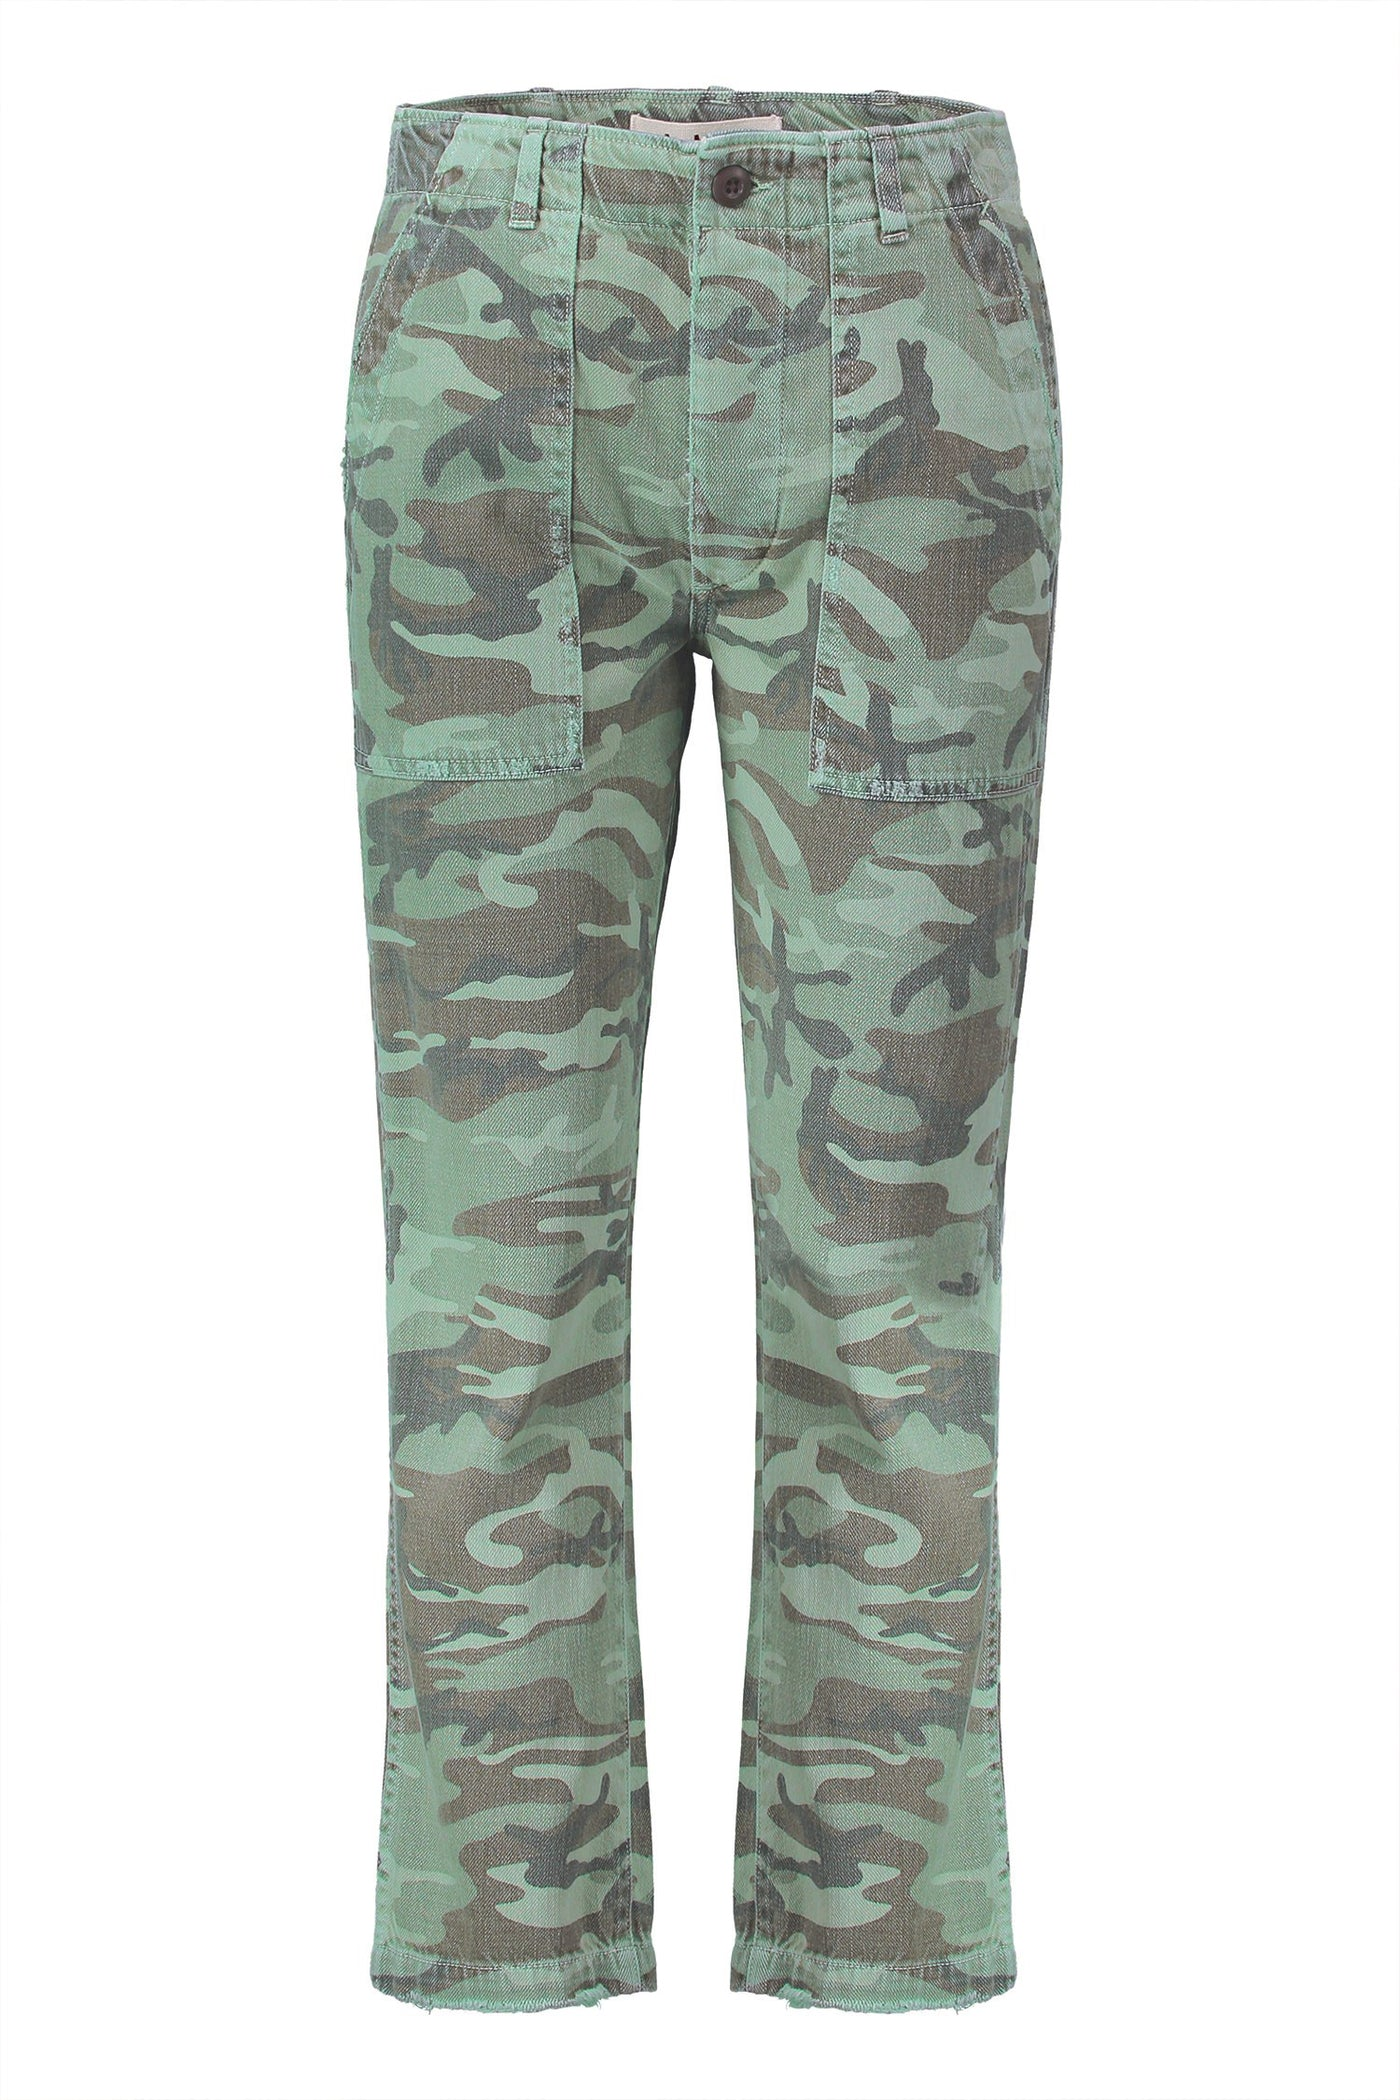 1ff54bf172 Army Pant in Spring Camo – AMO Official Site